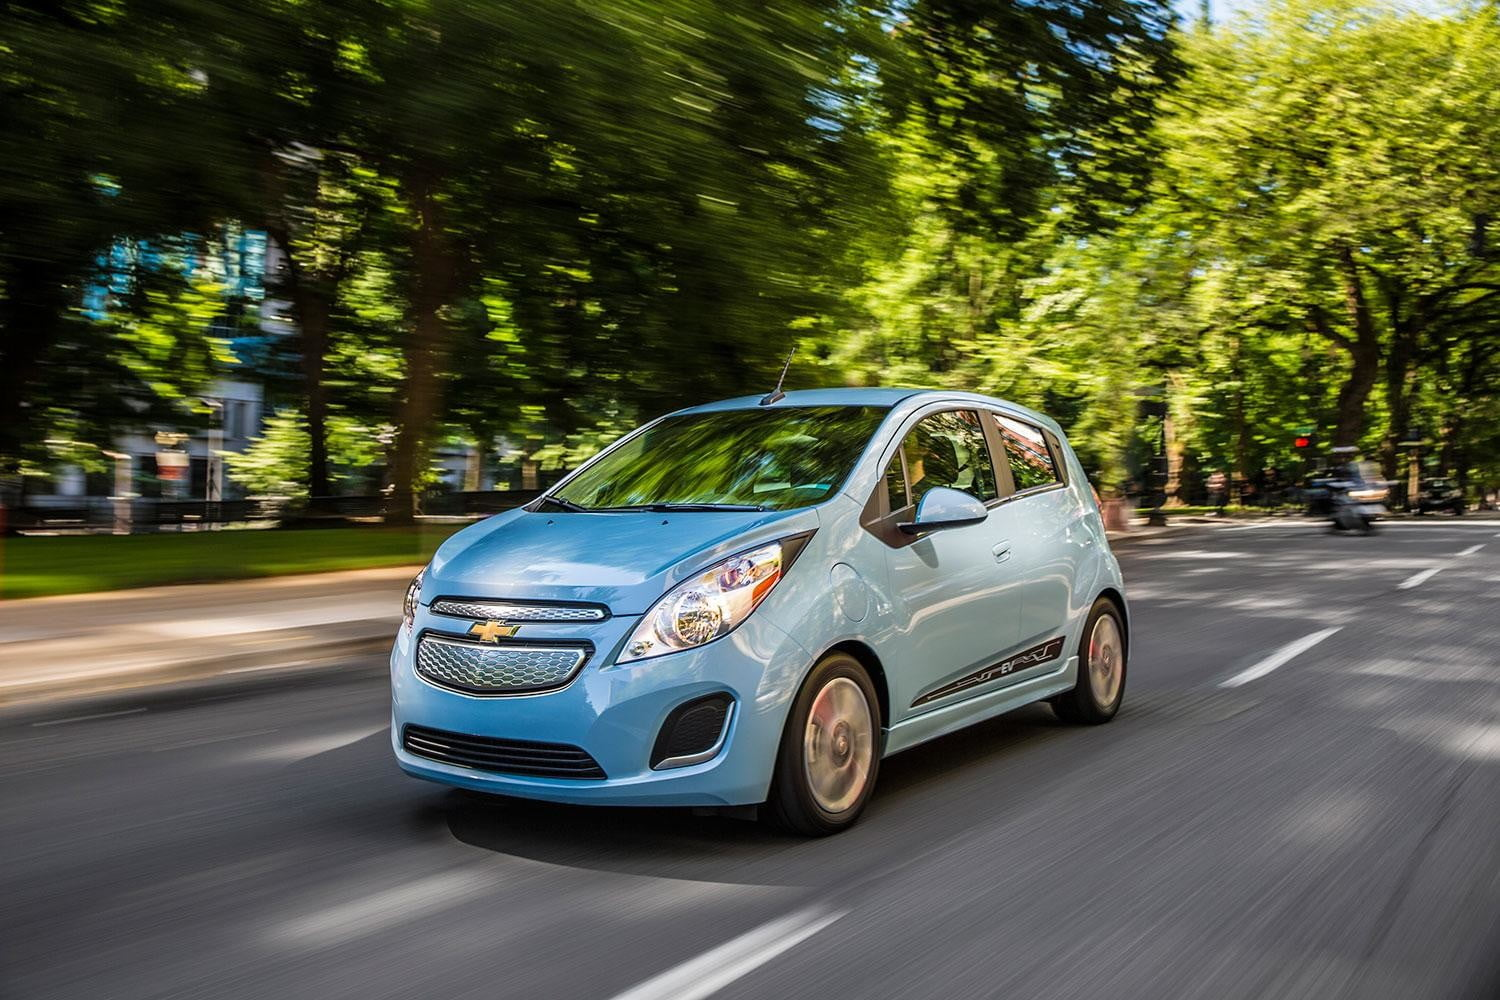 2014 Chevrolet SparkEV exterior front left angle motion